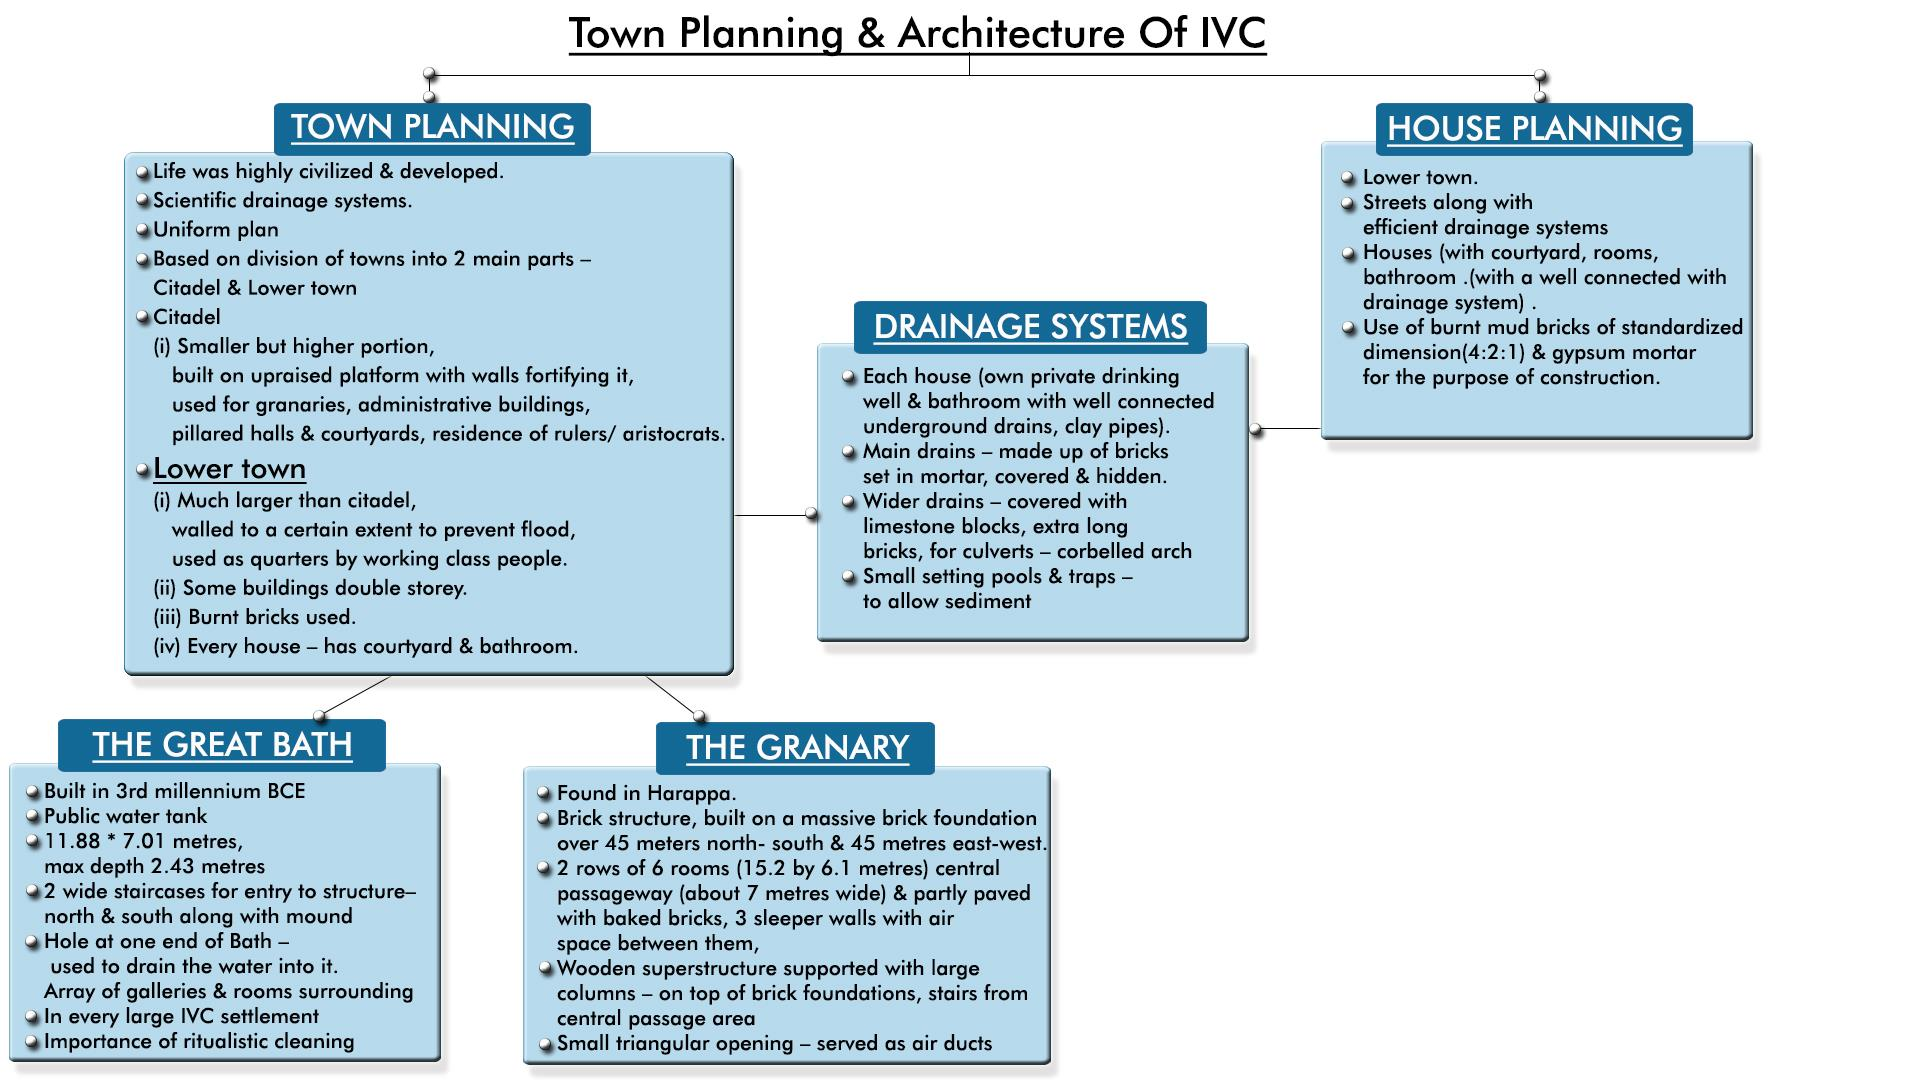 MindMaps: Introduction to IVC & Town Planning UPSC Notes | EduRev